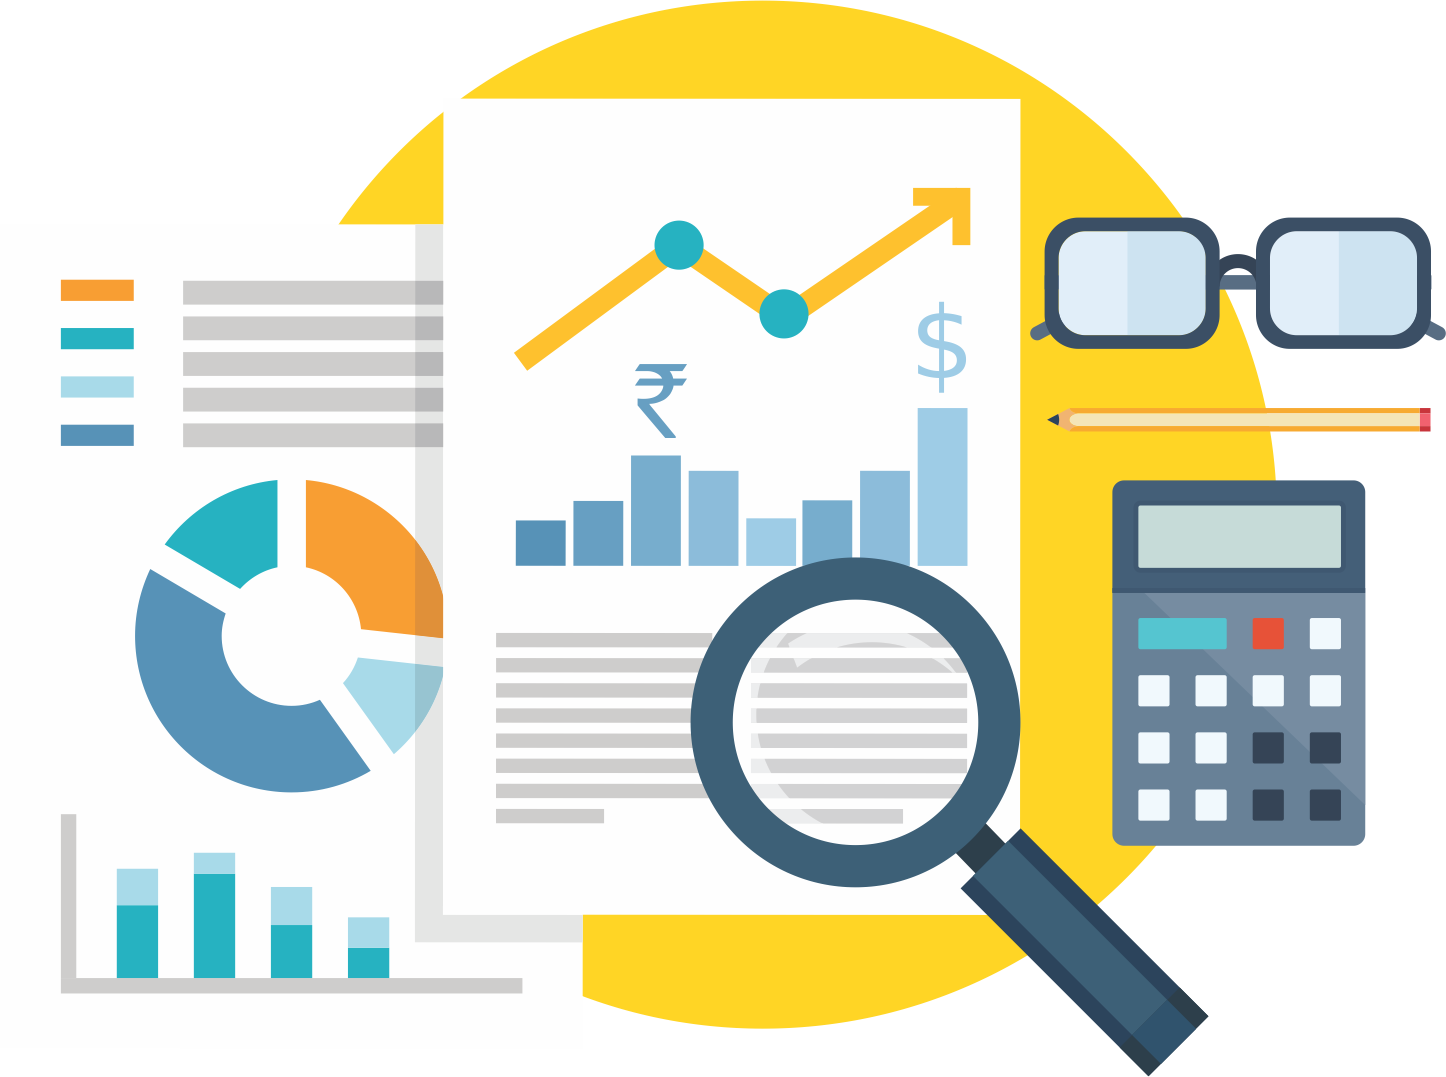 Finance clipart financial model. Career in prodegree course